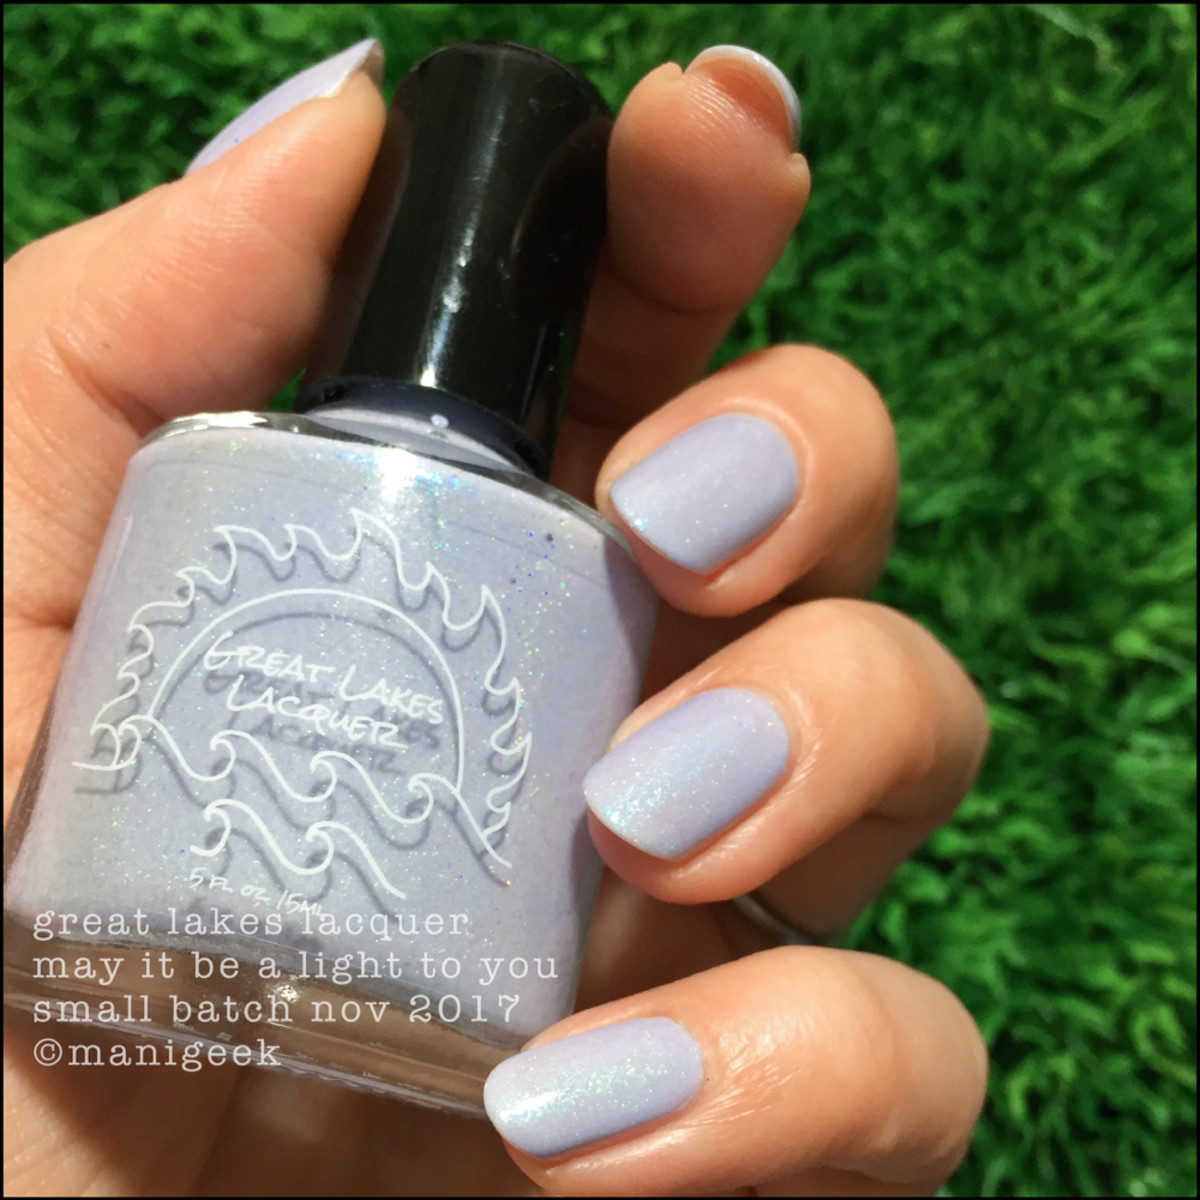 Great Lakes Lacquer May it be a Light To You 2 _ Great Lakes Lacquer Holiday 2017